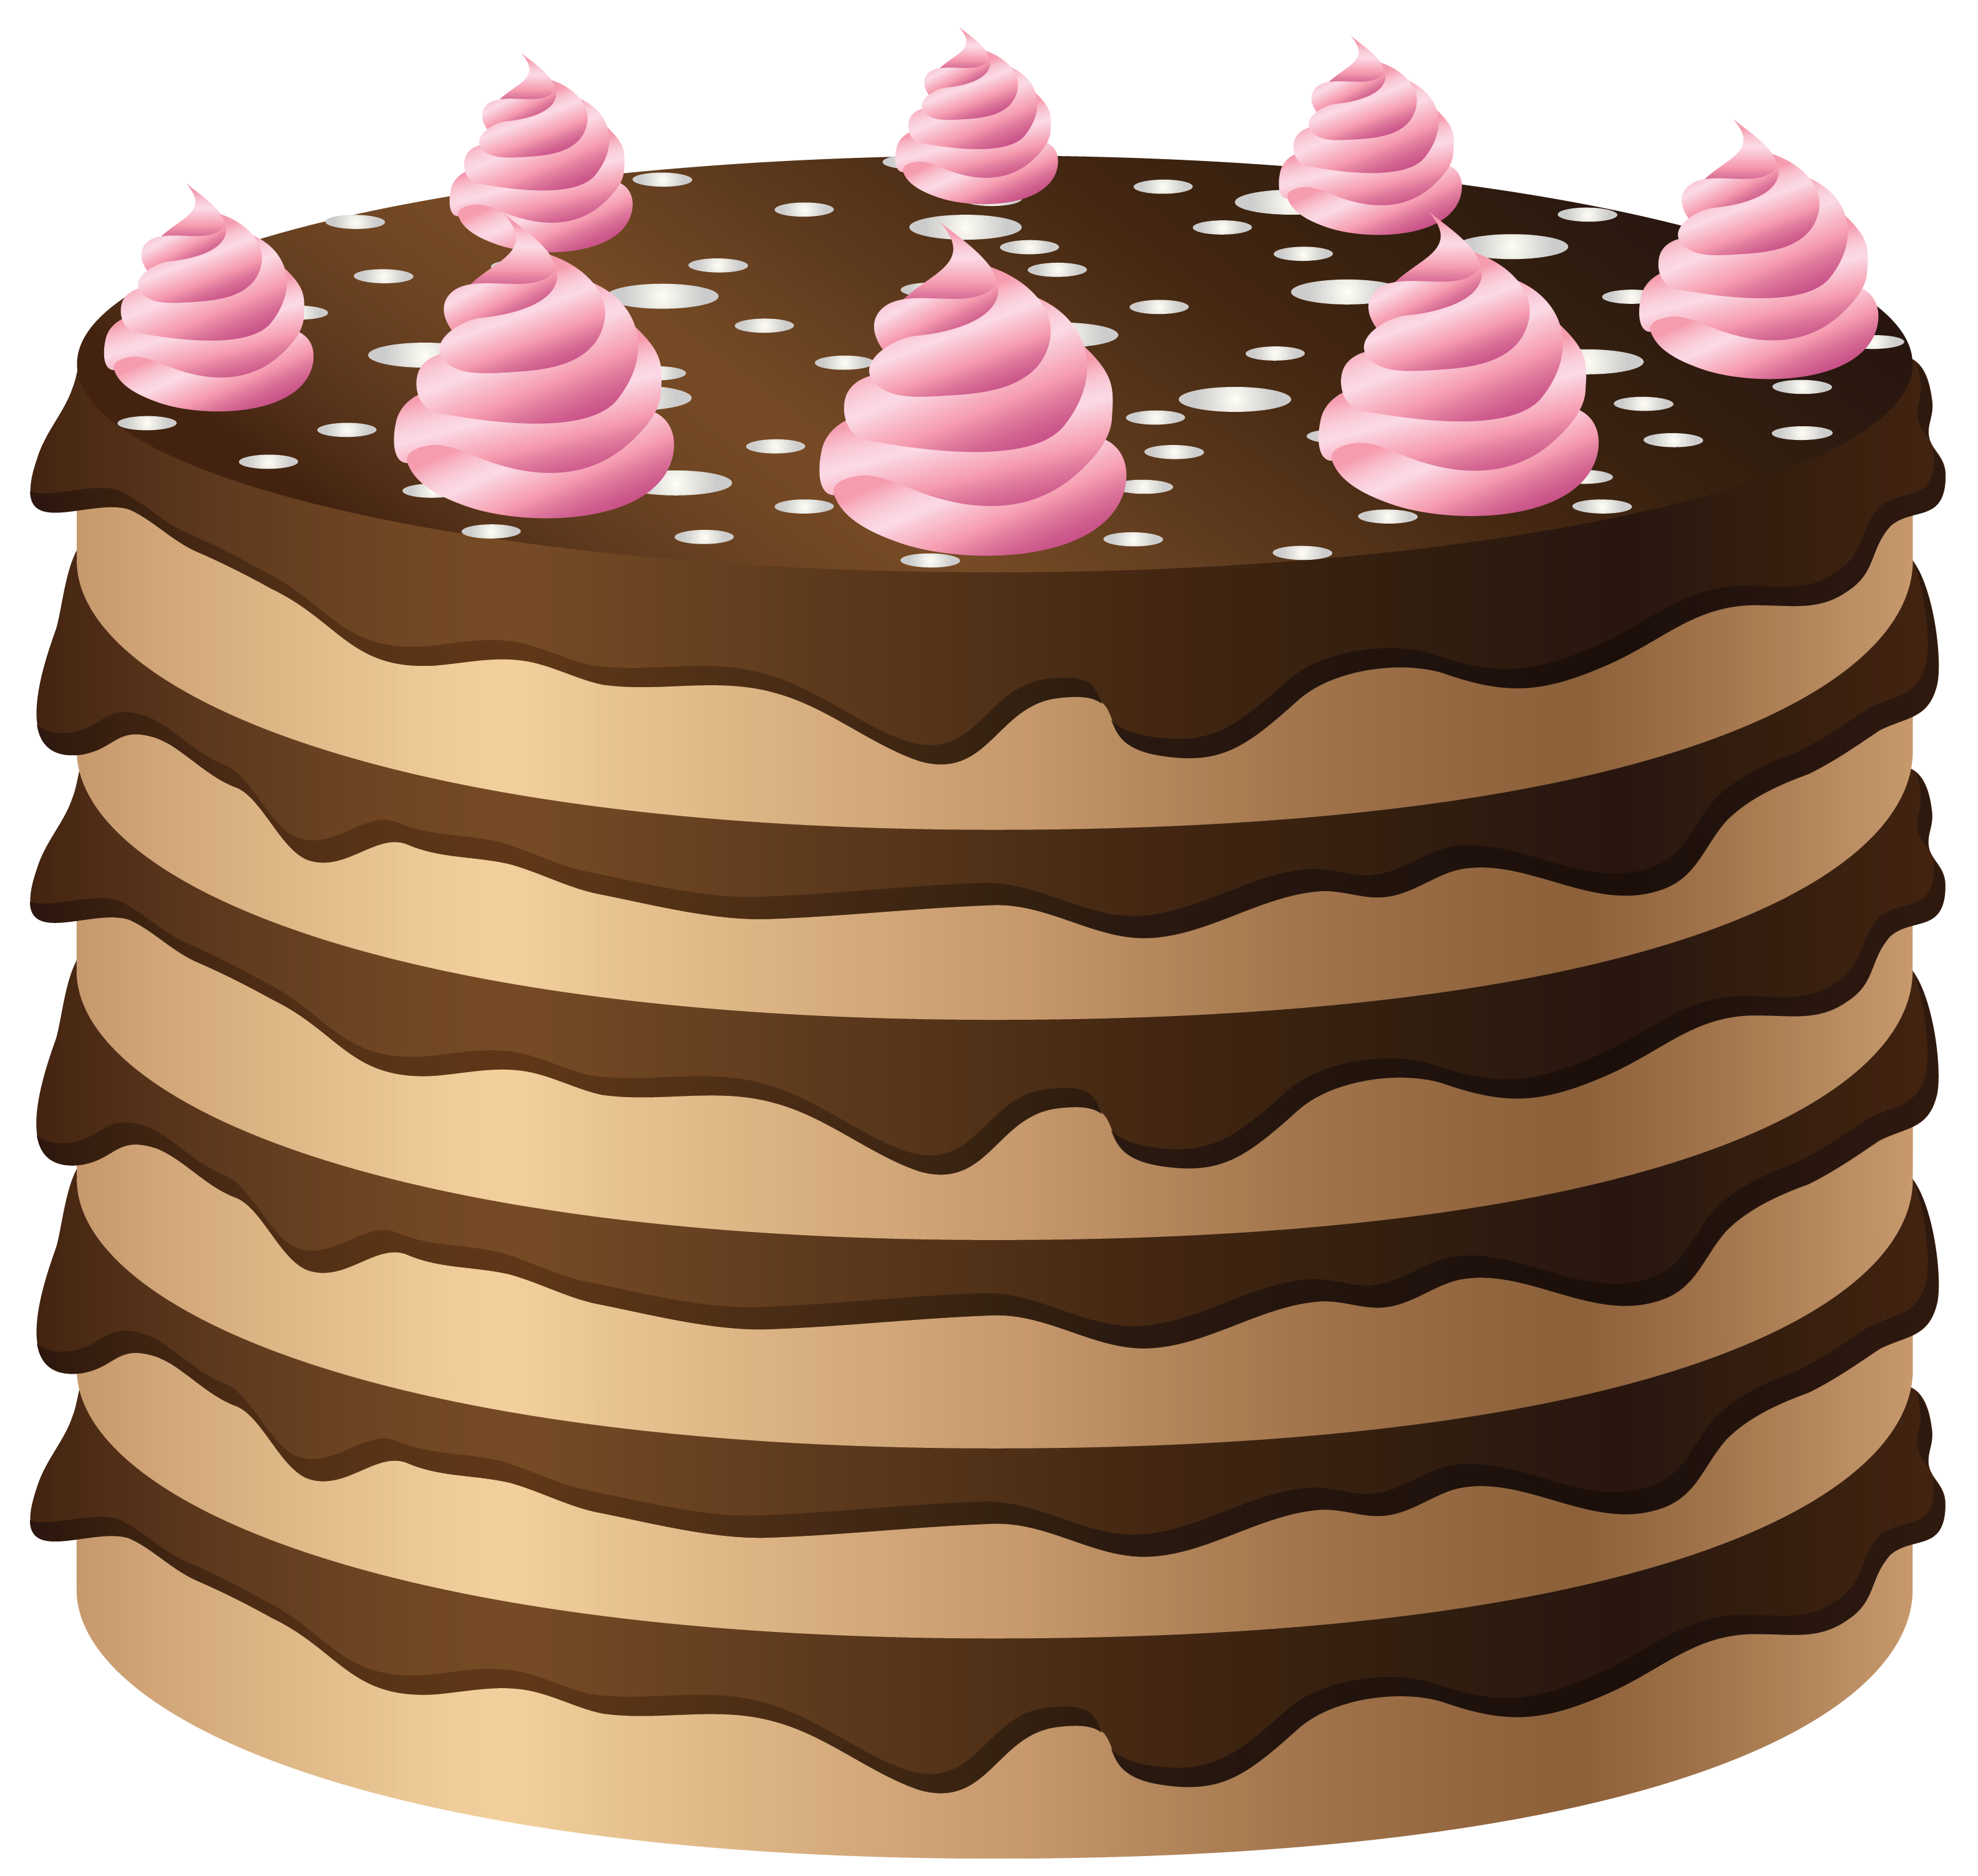 France clipart pastery. Chocolate cake with pink